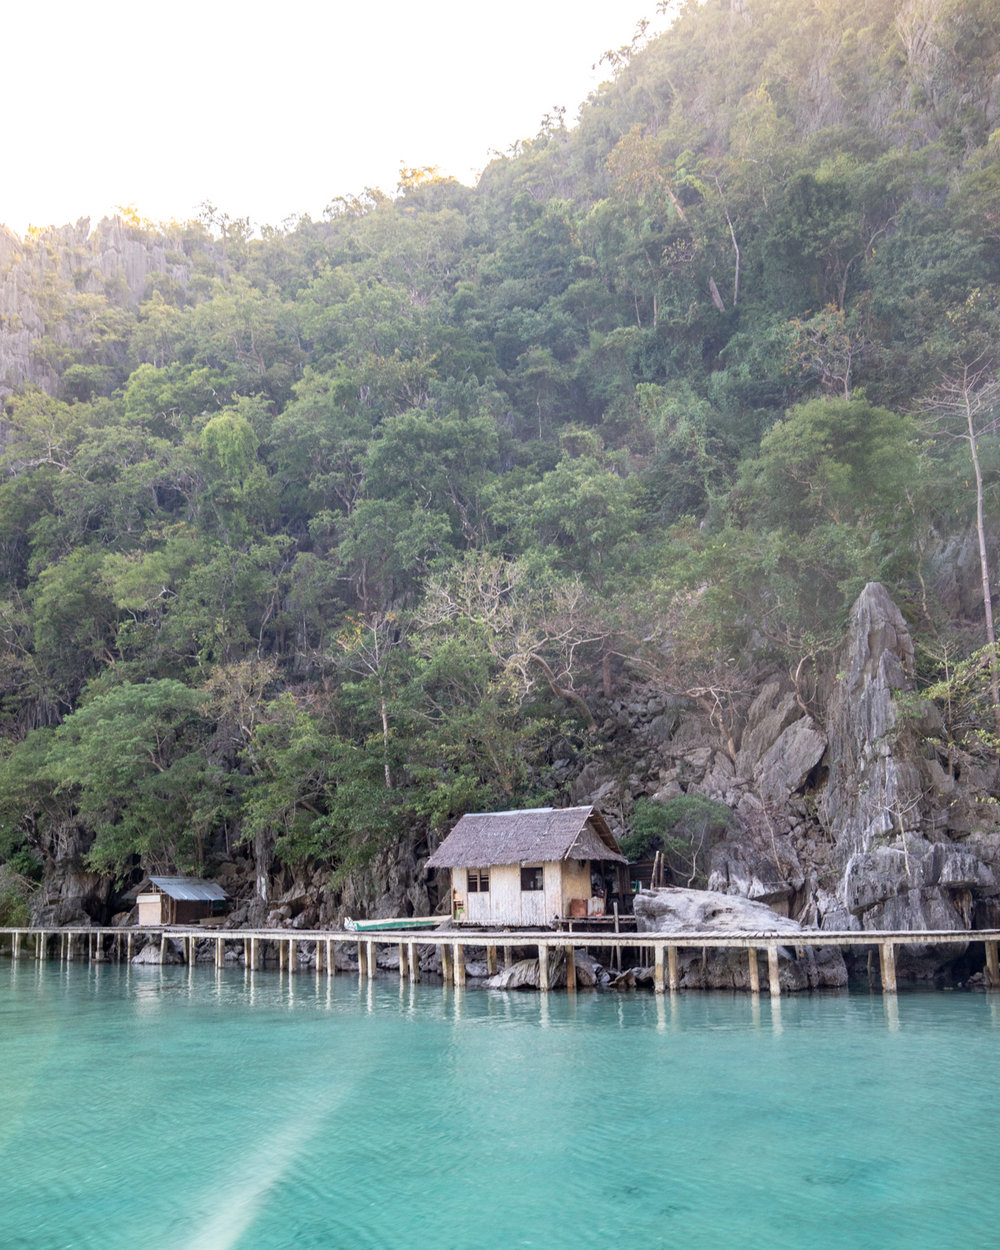 Kayangan Lake Hikes - How to get to Kayangan Lake